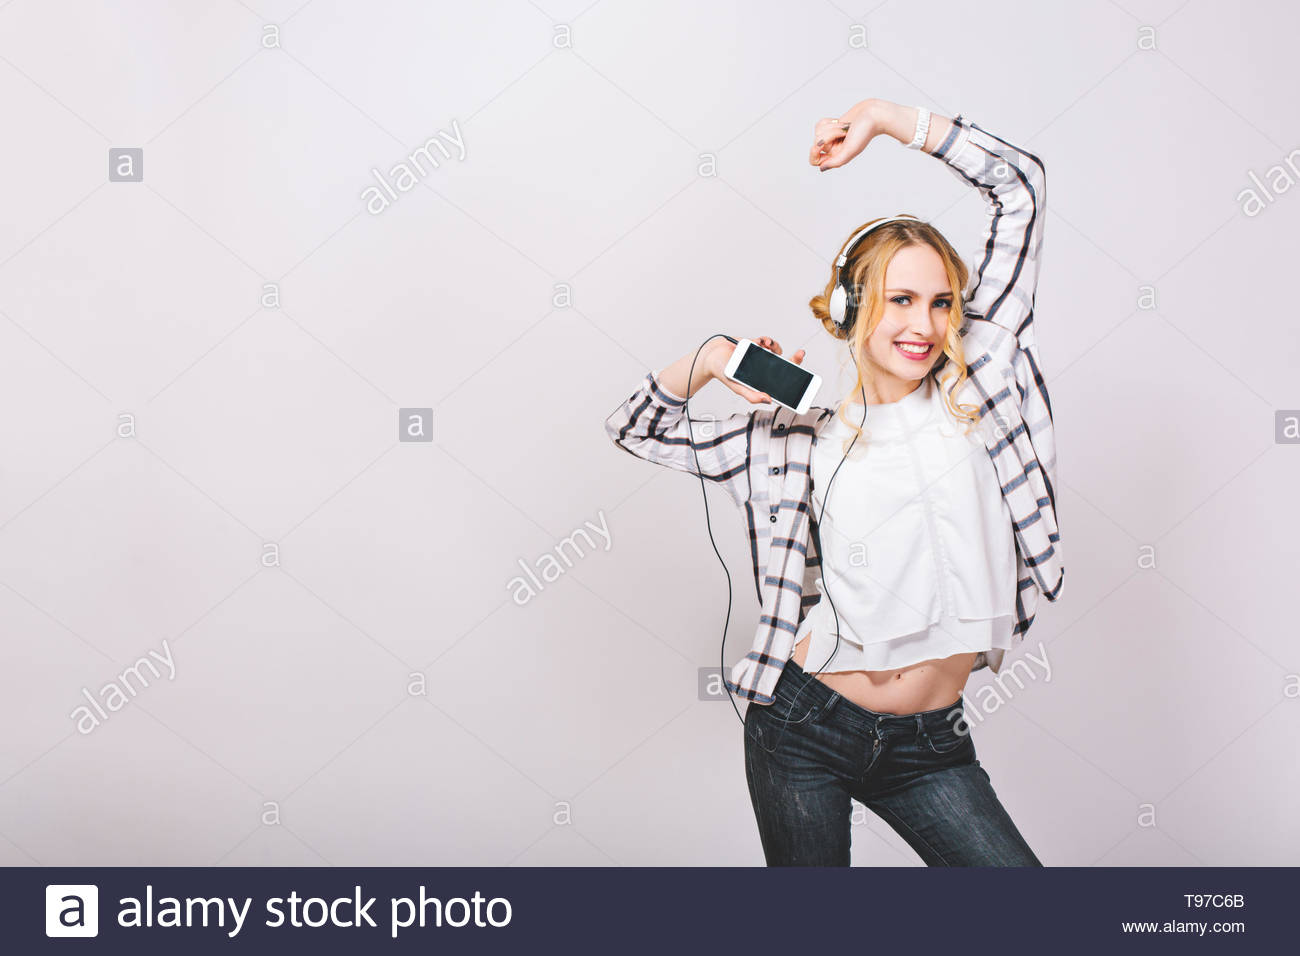 Positive photo emotional cute girl with smartphone, enjoying her life, listening to favorite music, dancing against grey wall. Leisure and technology concept. Good mood. - Stock Image